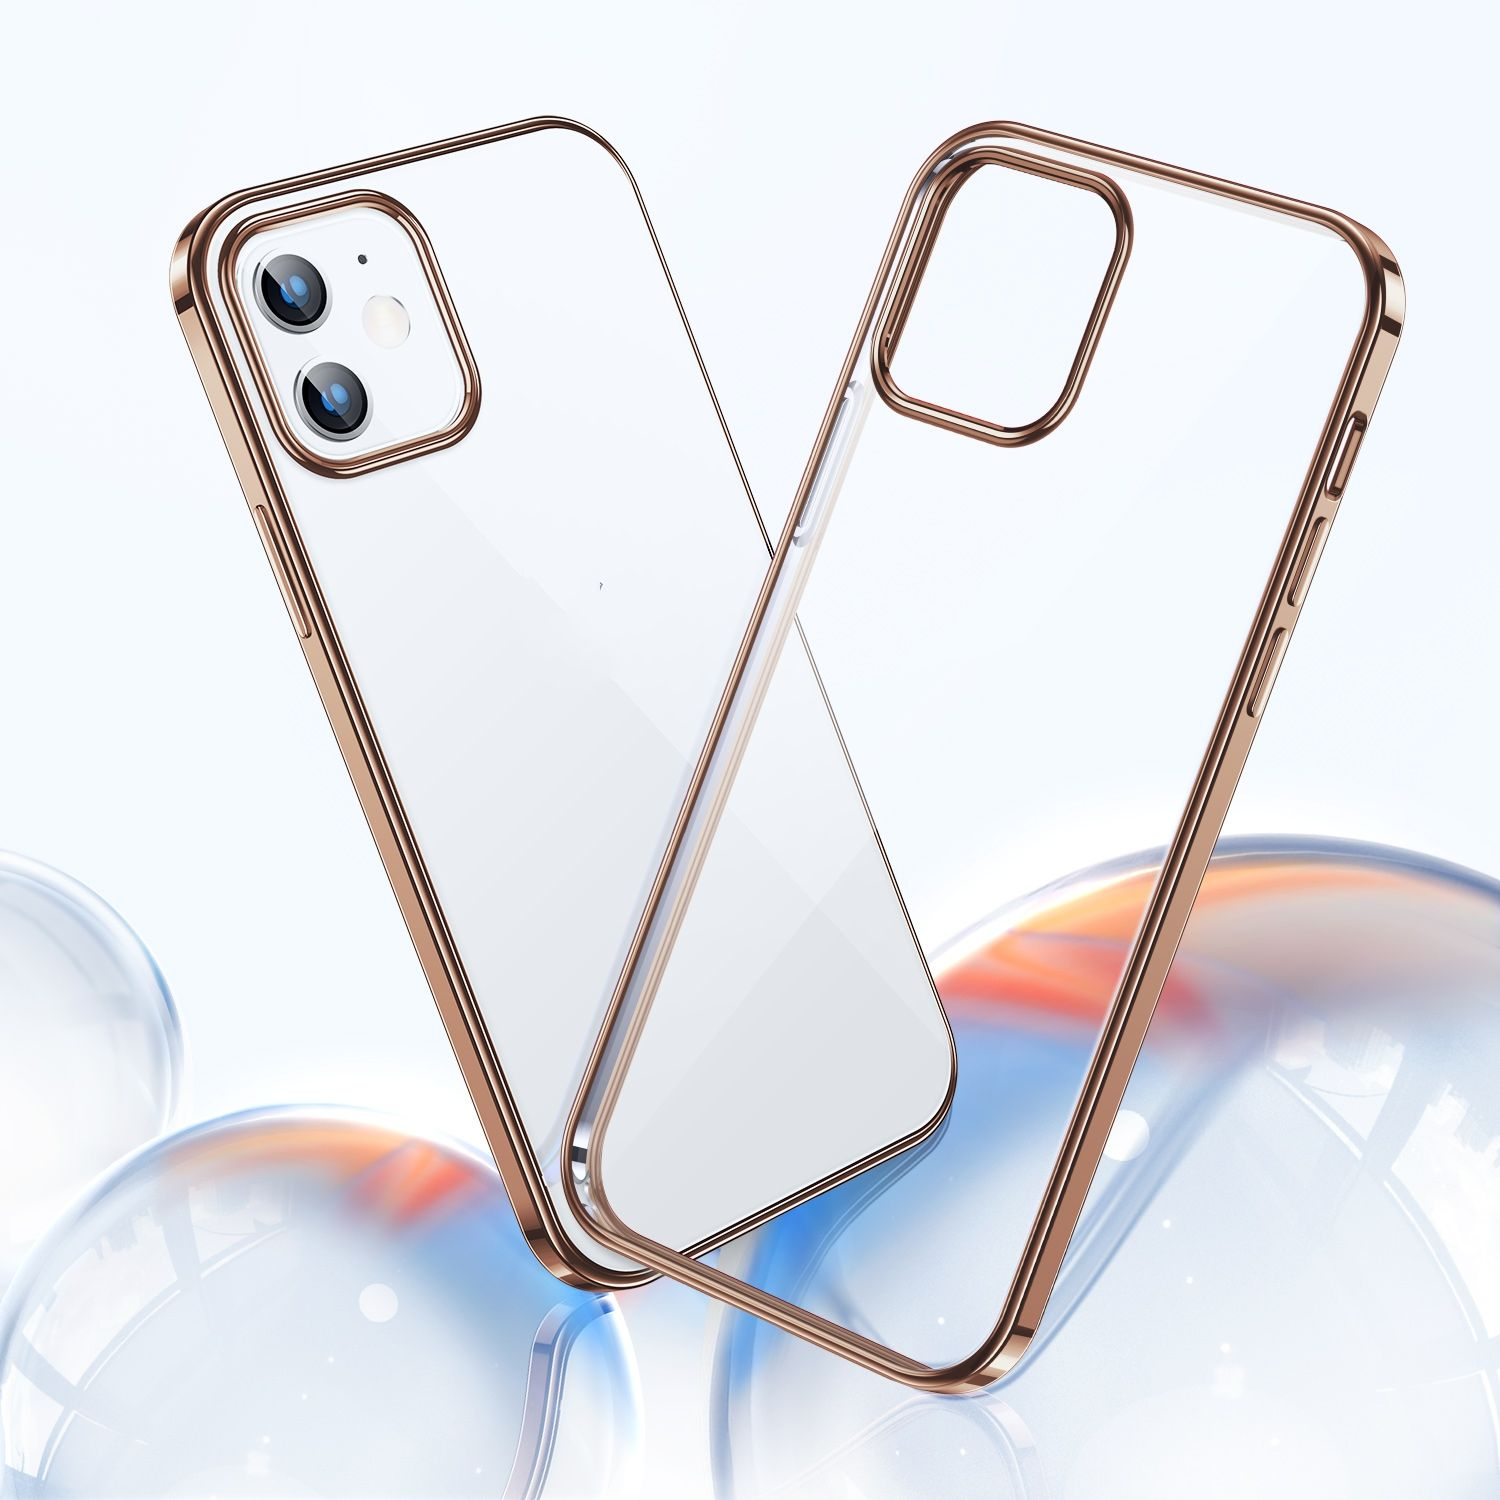 TORRAS 2020 Crystal Clear Golden Silicone Phone Case For iPhone 12 Mini 10-Time Anti-Yellowing Shockproof 5.4 Inch iPhone Case